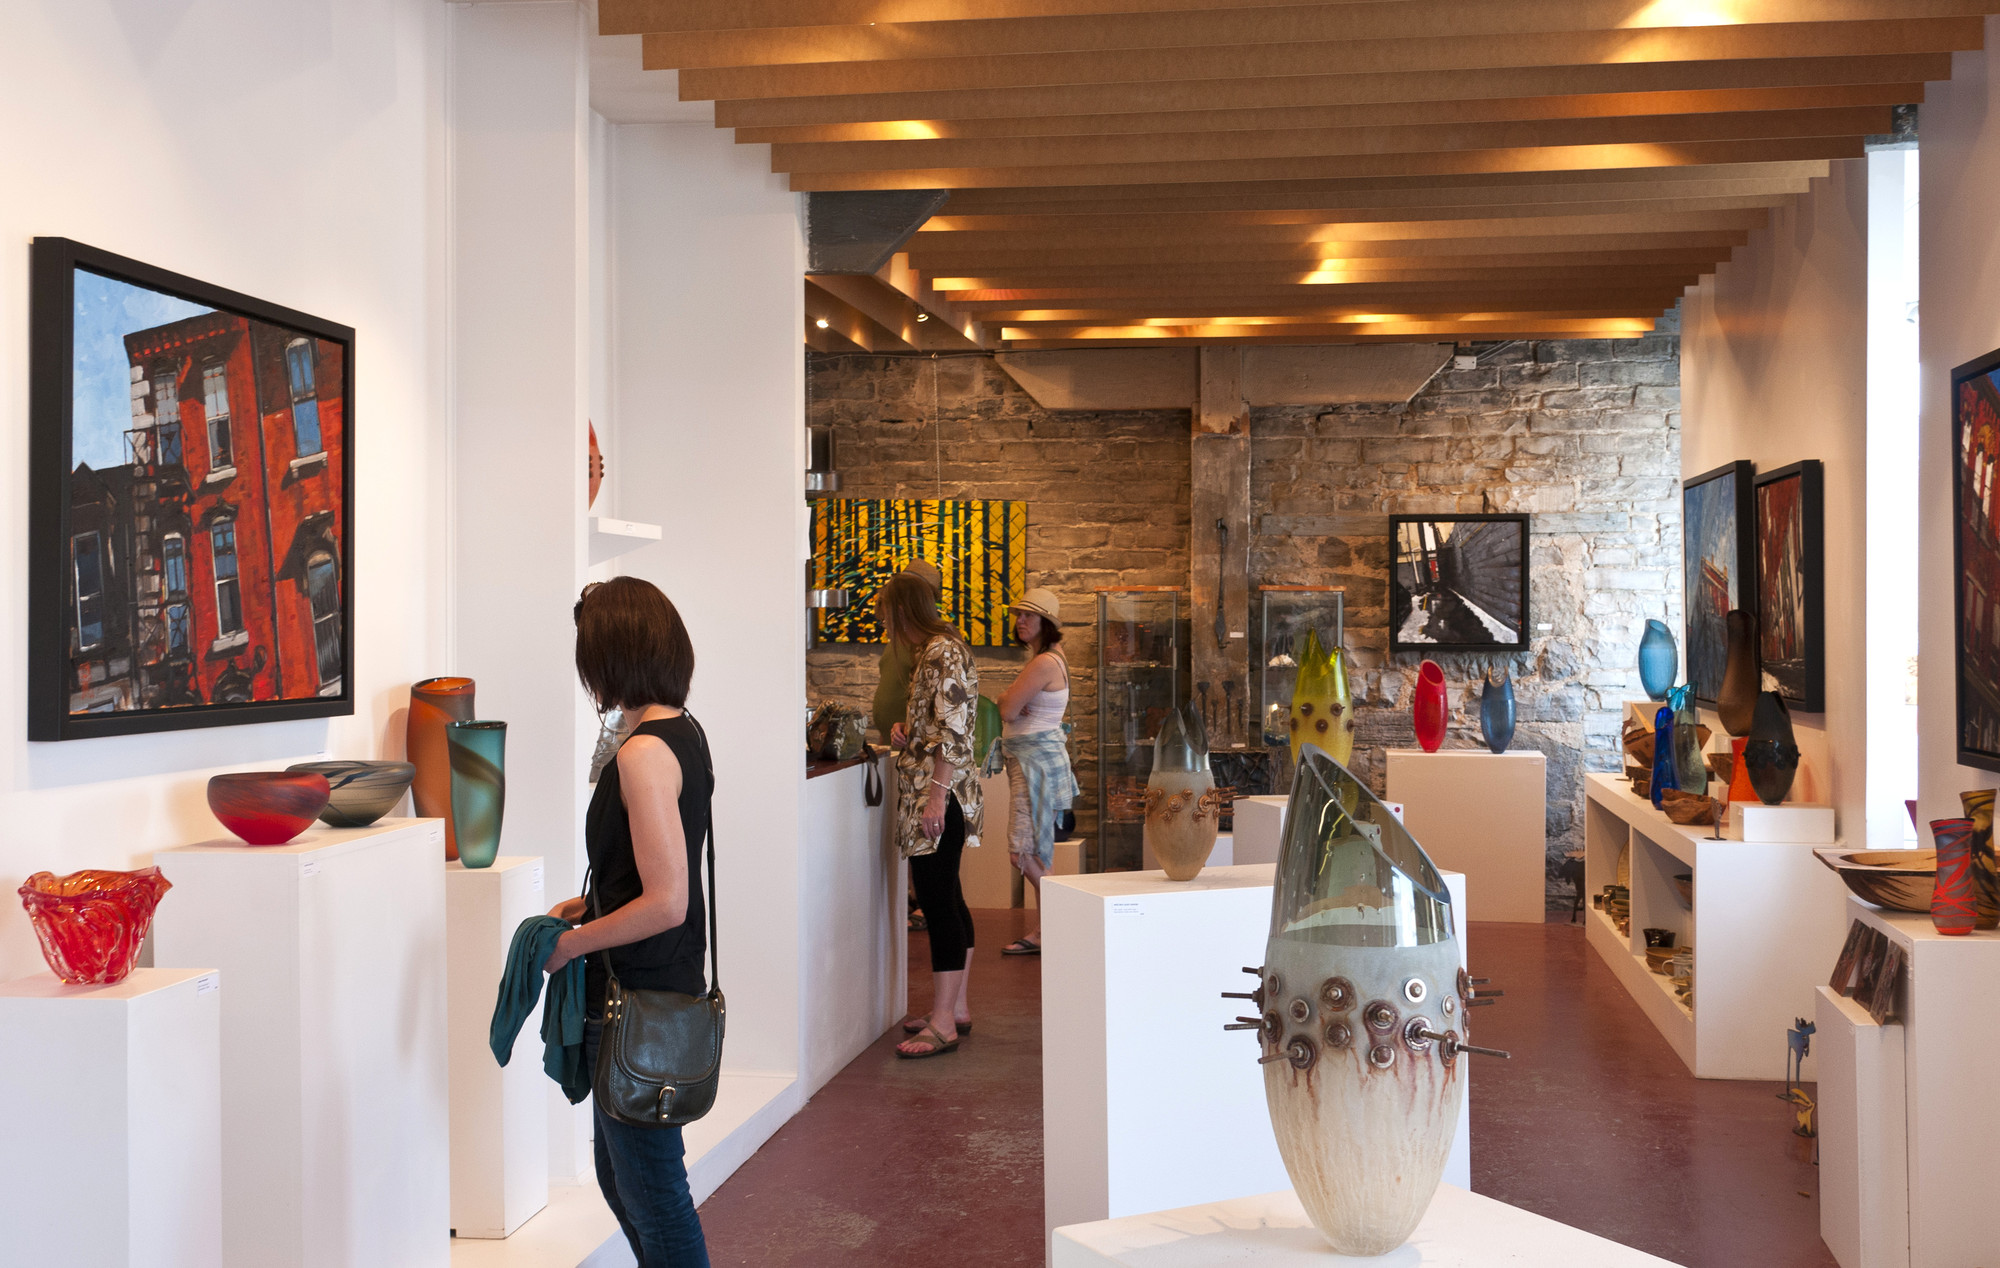 Head to Kingston Glass Studio & Gallery for mind-blowing glass-blown art and more. (The Great Waterway)